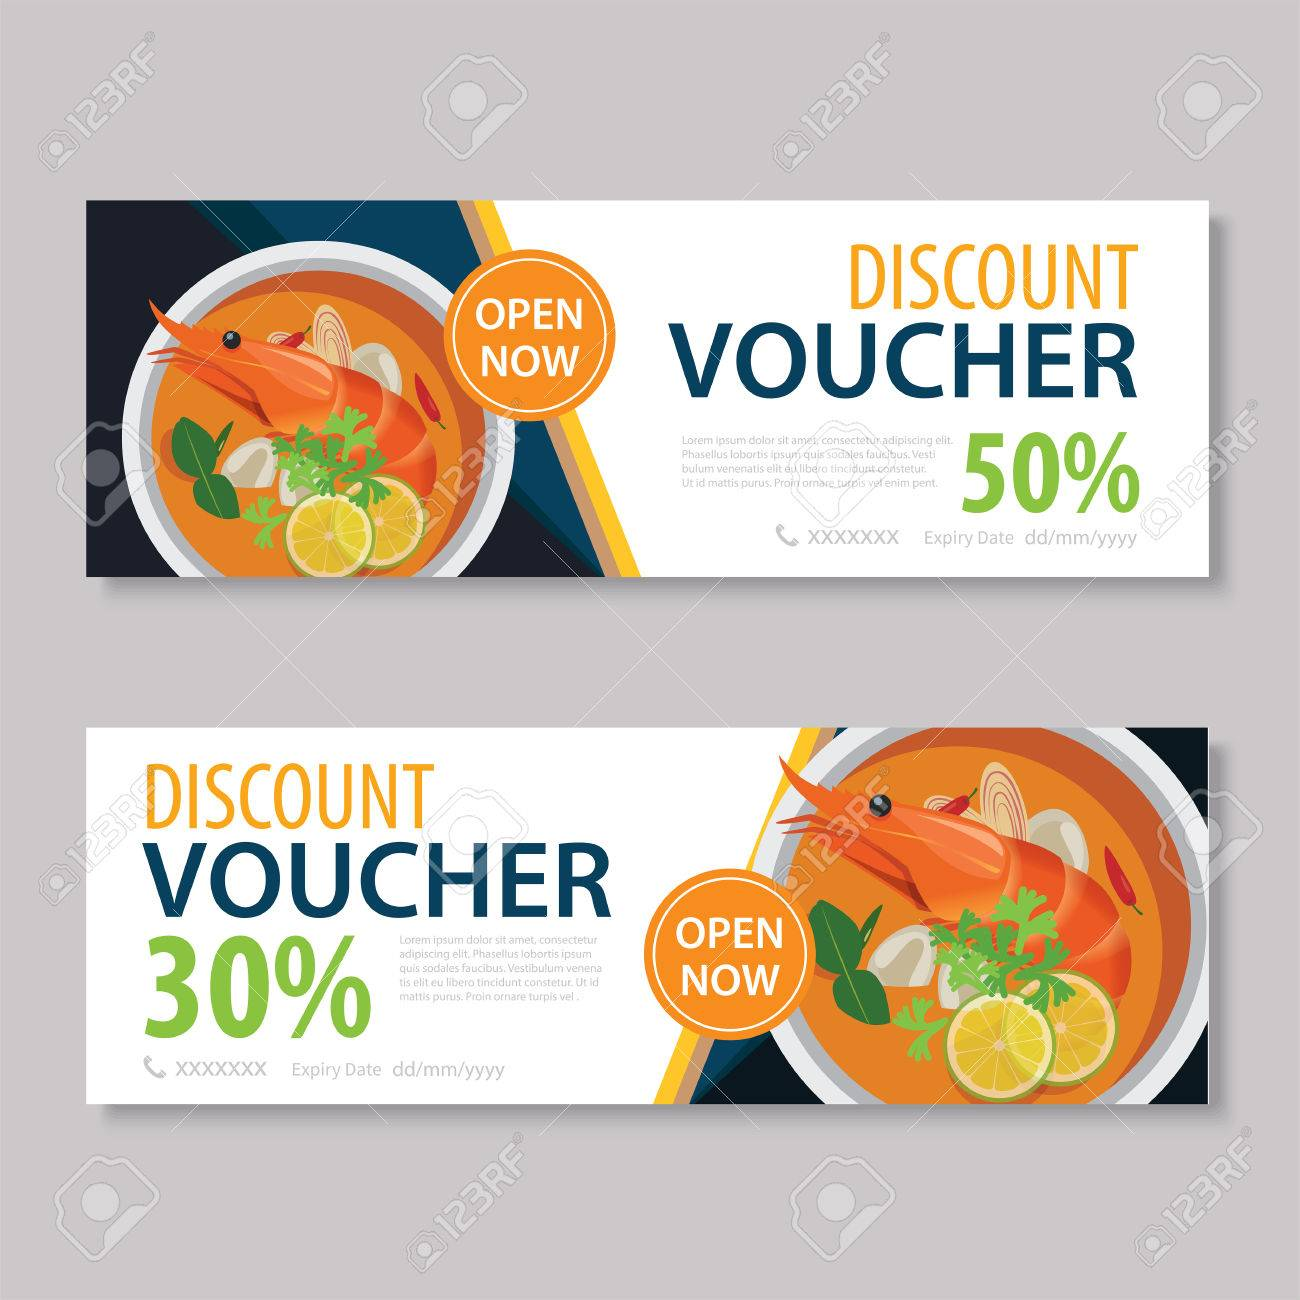 Nice Meal Voucher Template Free Reciept Free Templates For Tickets 61871161  Discount Voucher Template With Thai Food